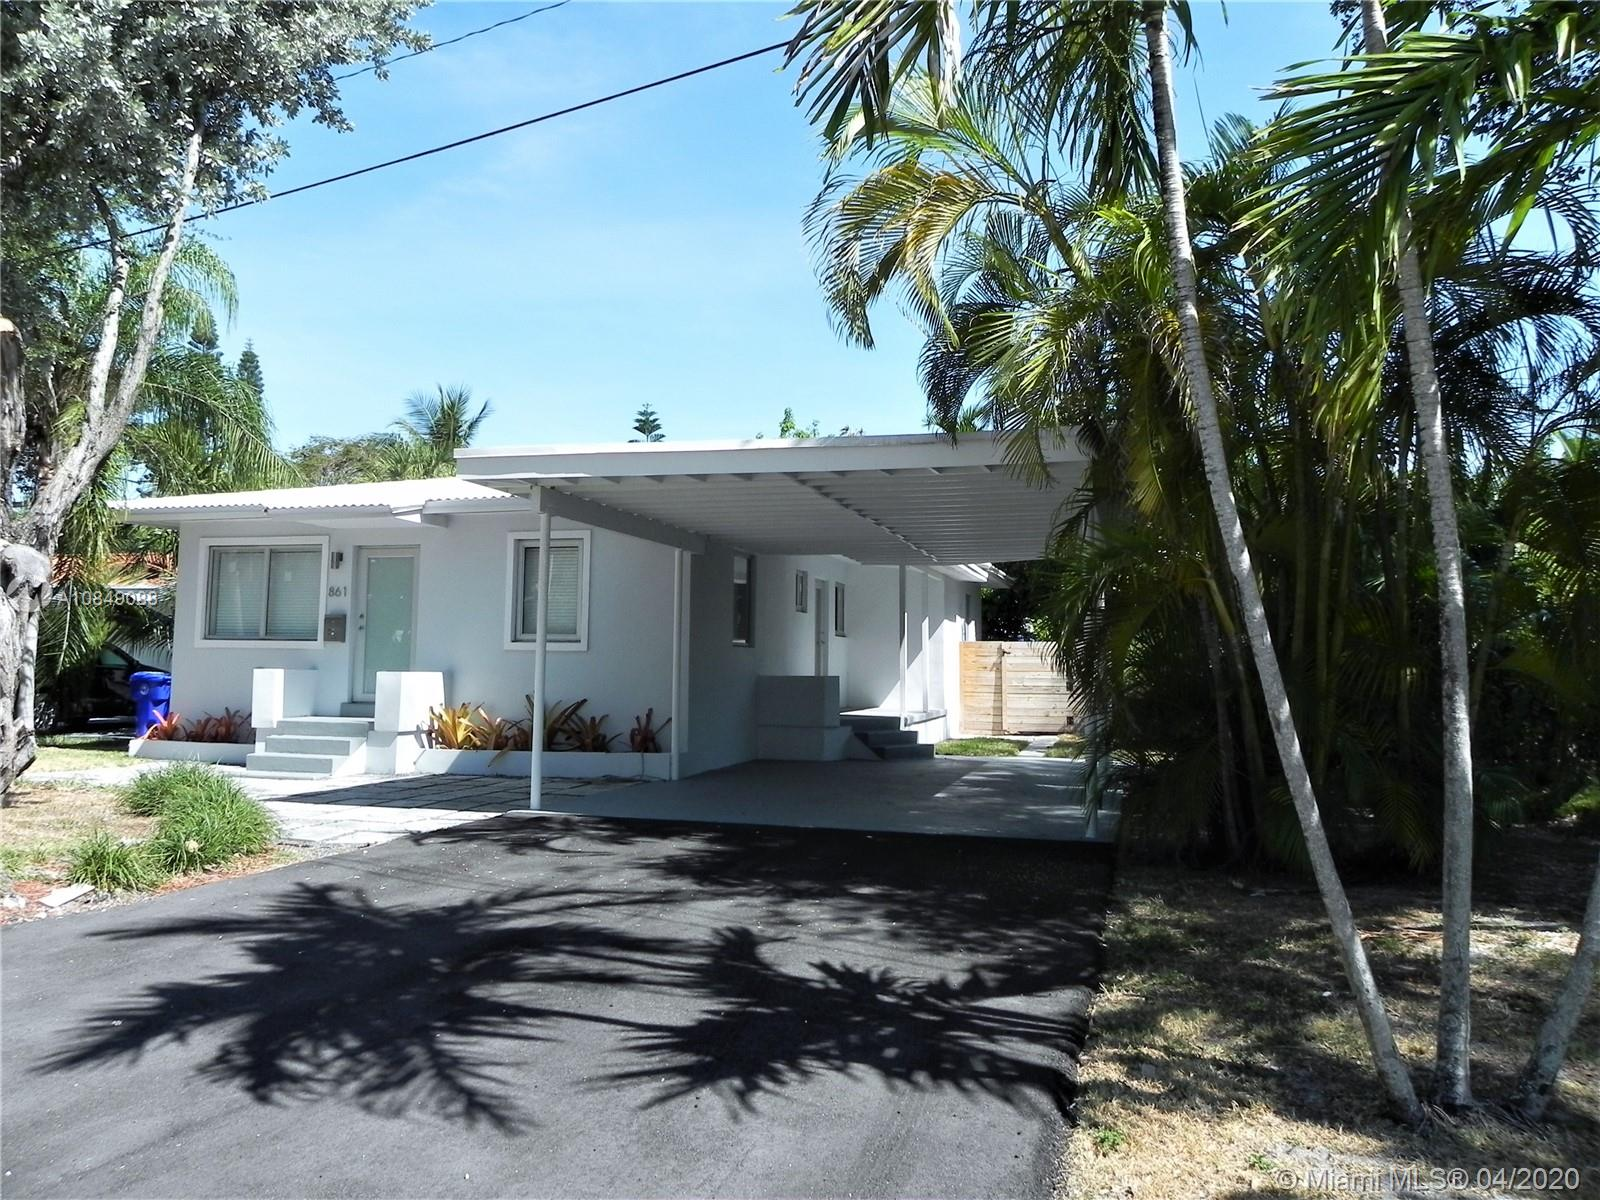 861 NE 70th St, Miami, Florida 33138, 3 Bedrooms Bedrooms, ,2 BathroomsBathrooms,Residential,For Sale,861 NE 70th St,A10849088